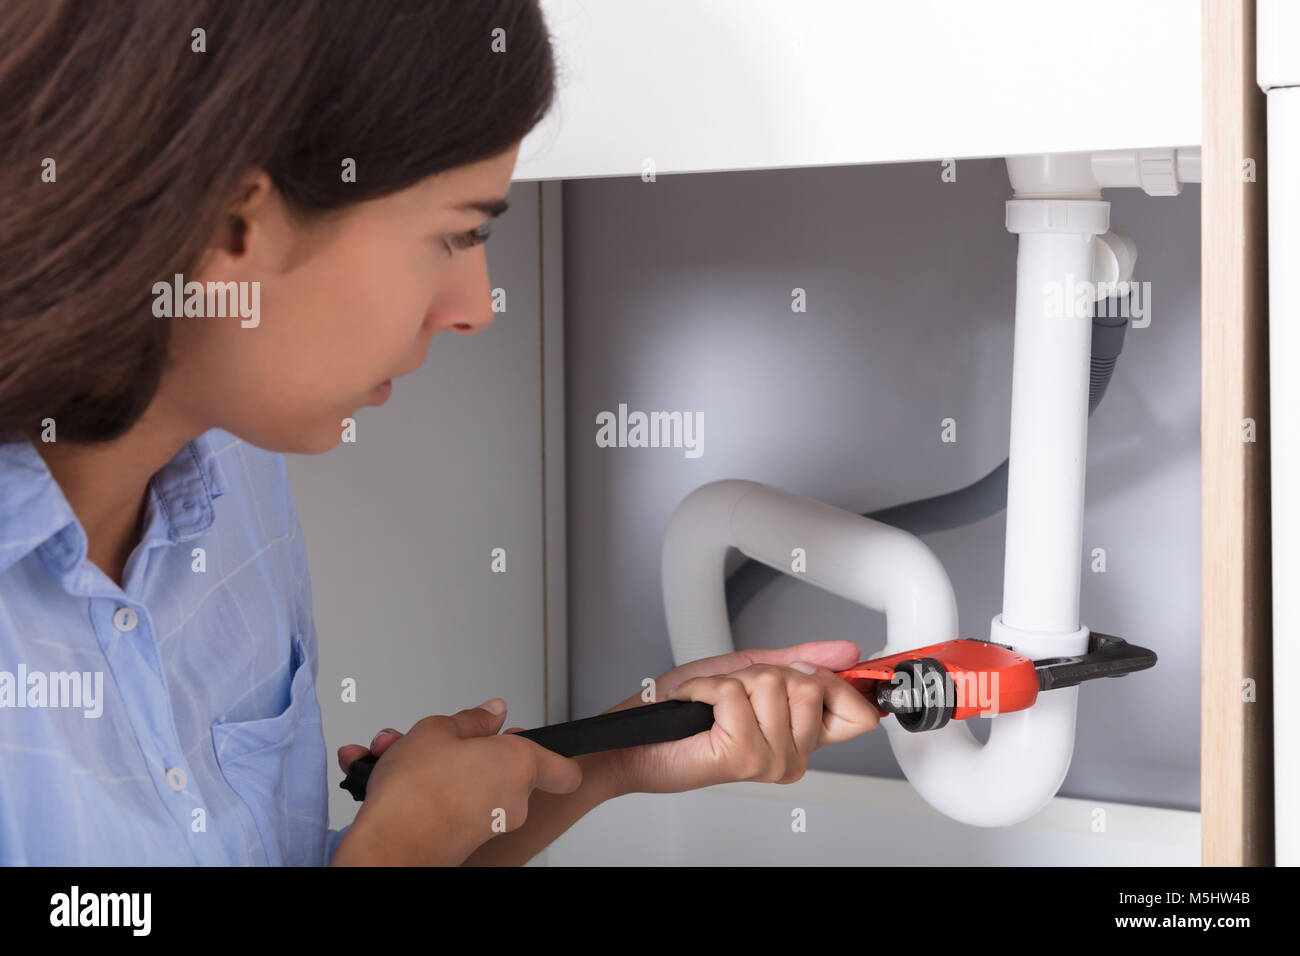 Close-up Of Young Woman Tightening Sink Pipe With Monkey Wrench In Kitchen - Stock Image